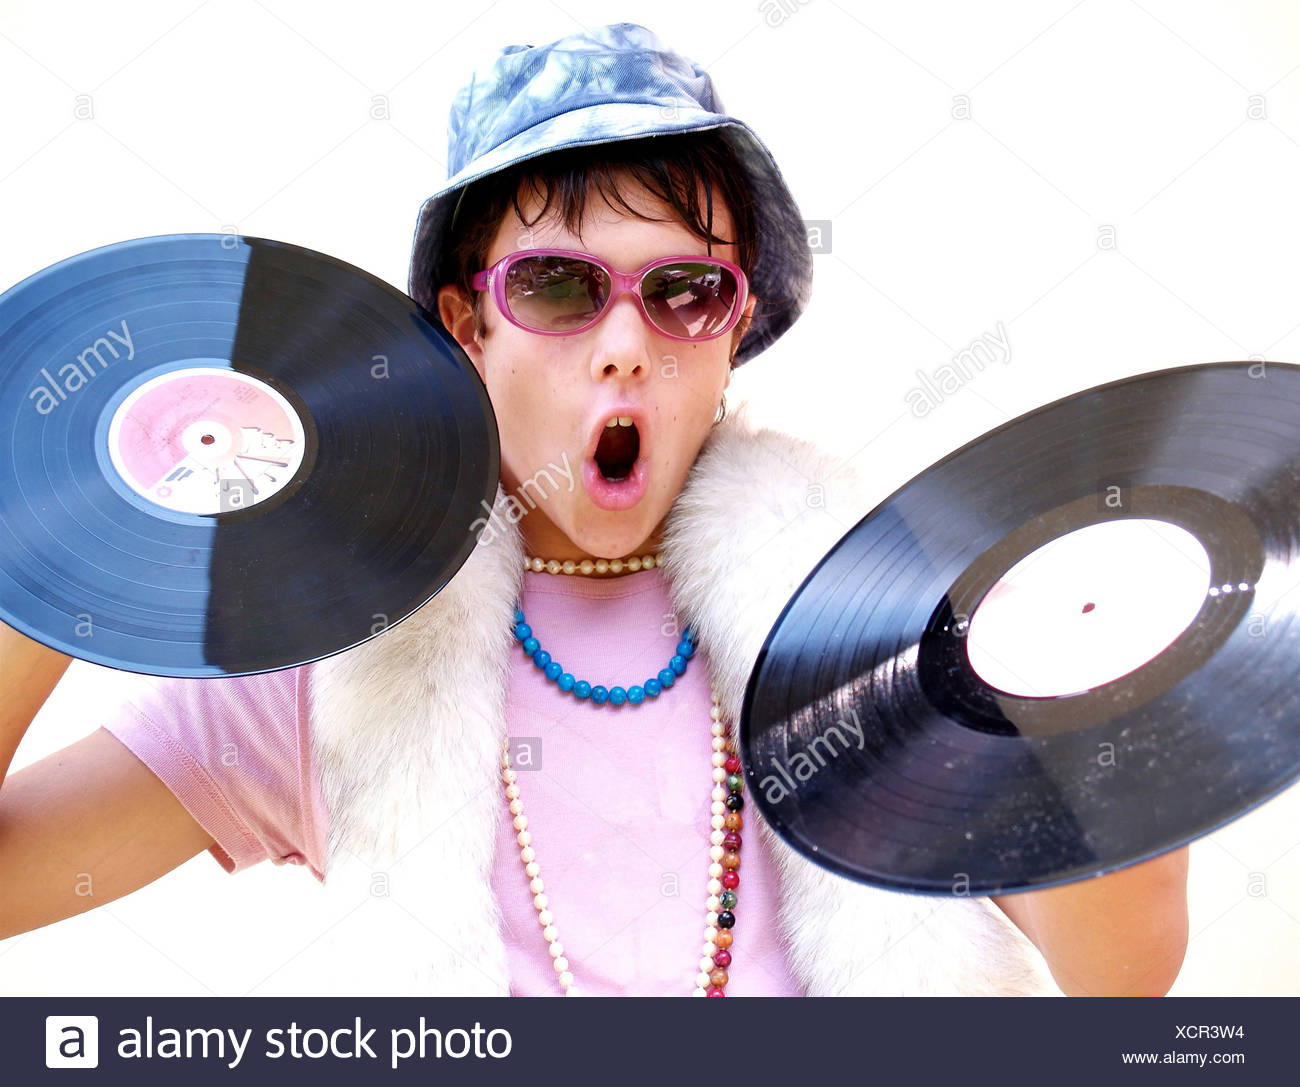 young disc jockey in a freaky outfit holding up vinyl discs - Stock Image